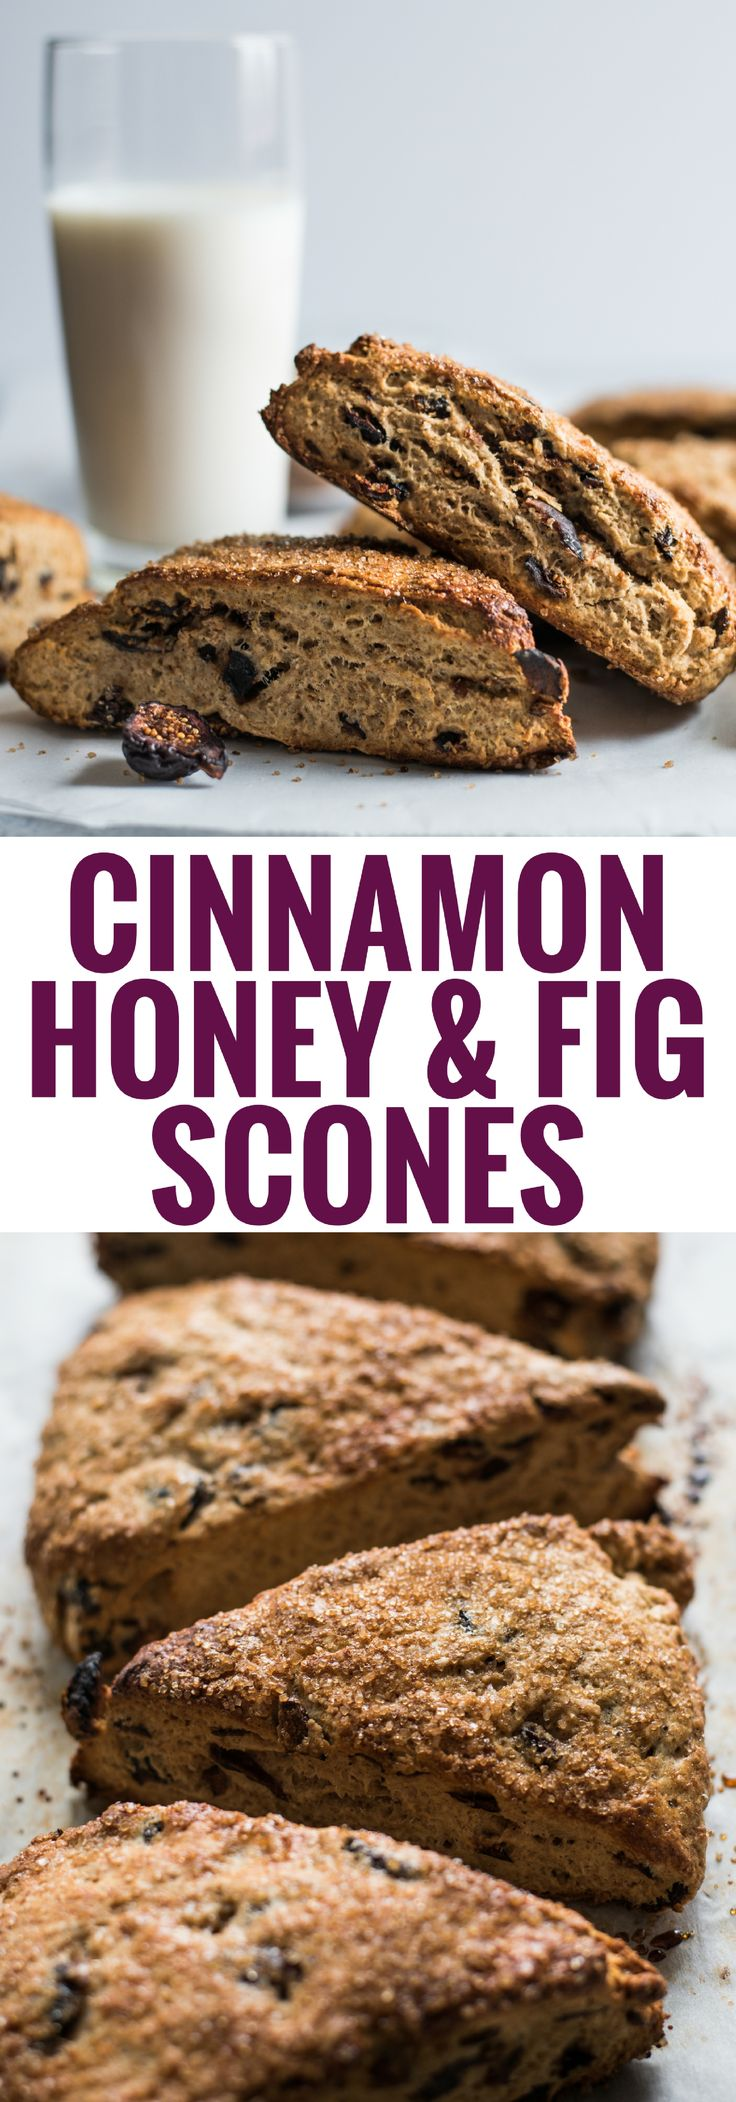 These easy to make Cinnamon Honey & Fig Scones are sweetened with honey, cinnamon and filled with black mission figs. Great for breakfast, brunch or dessert!